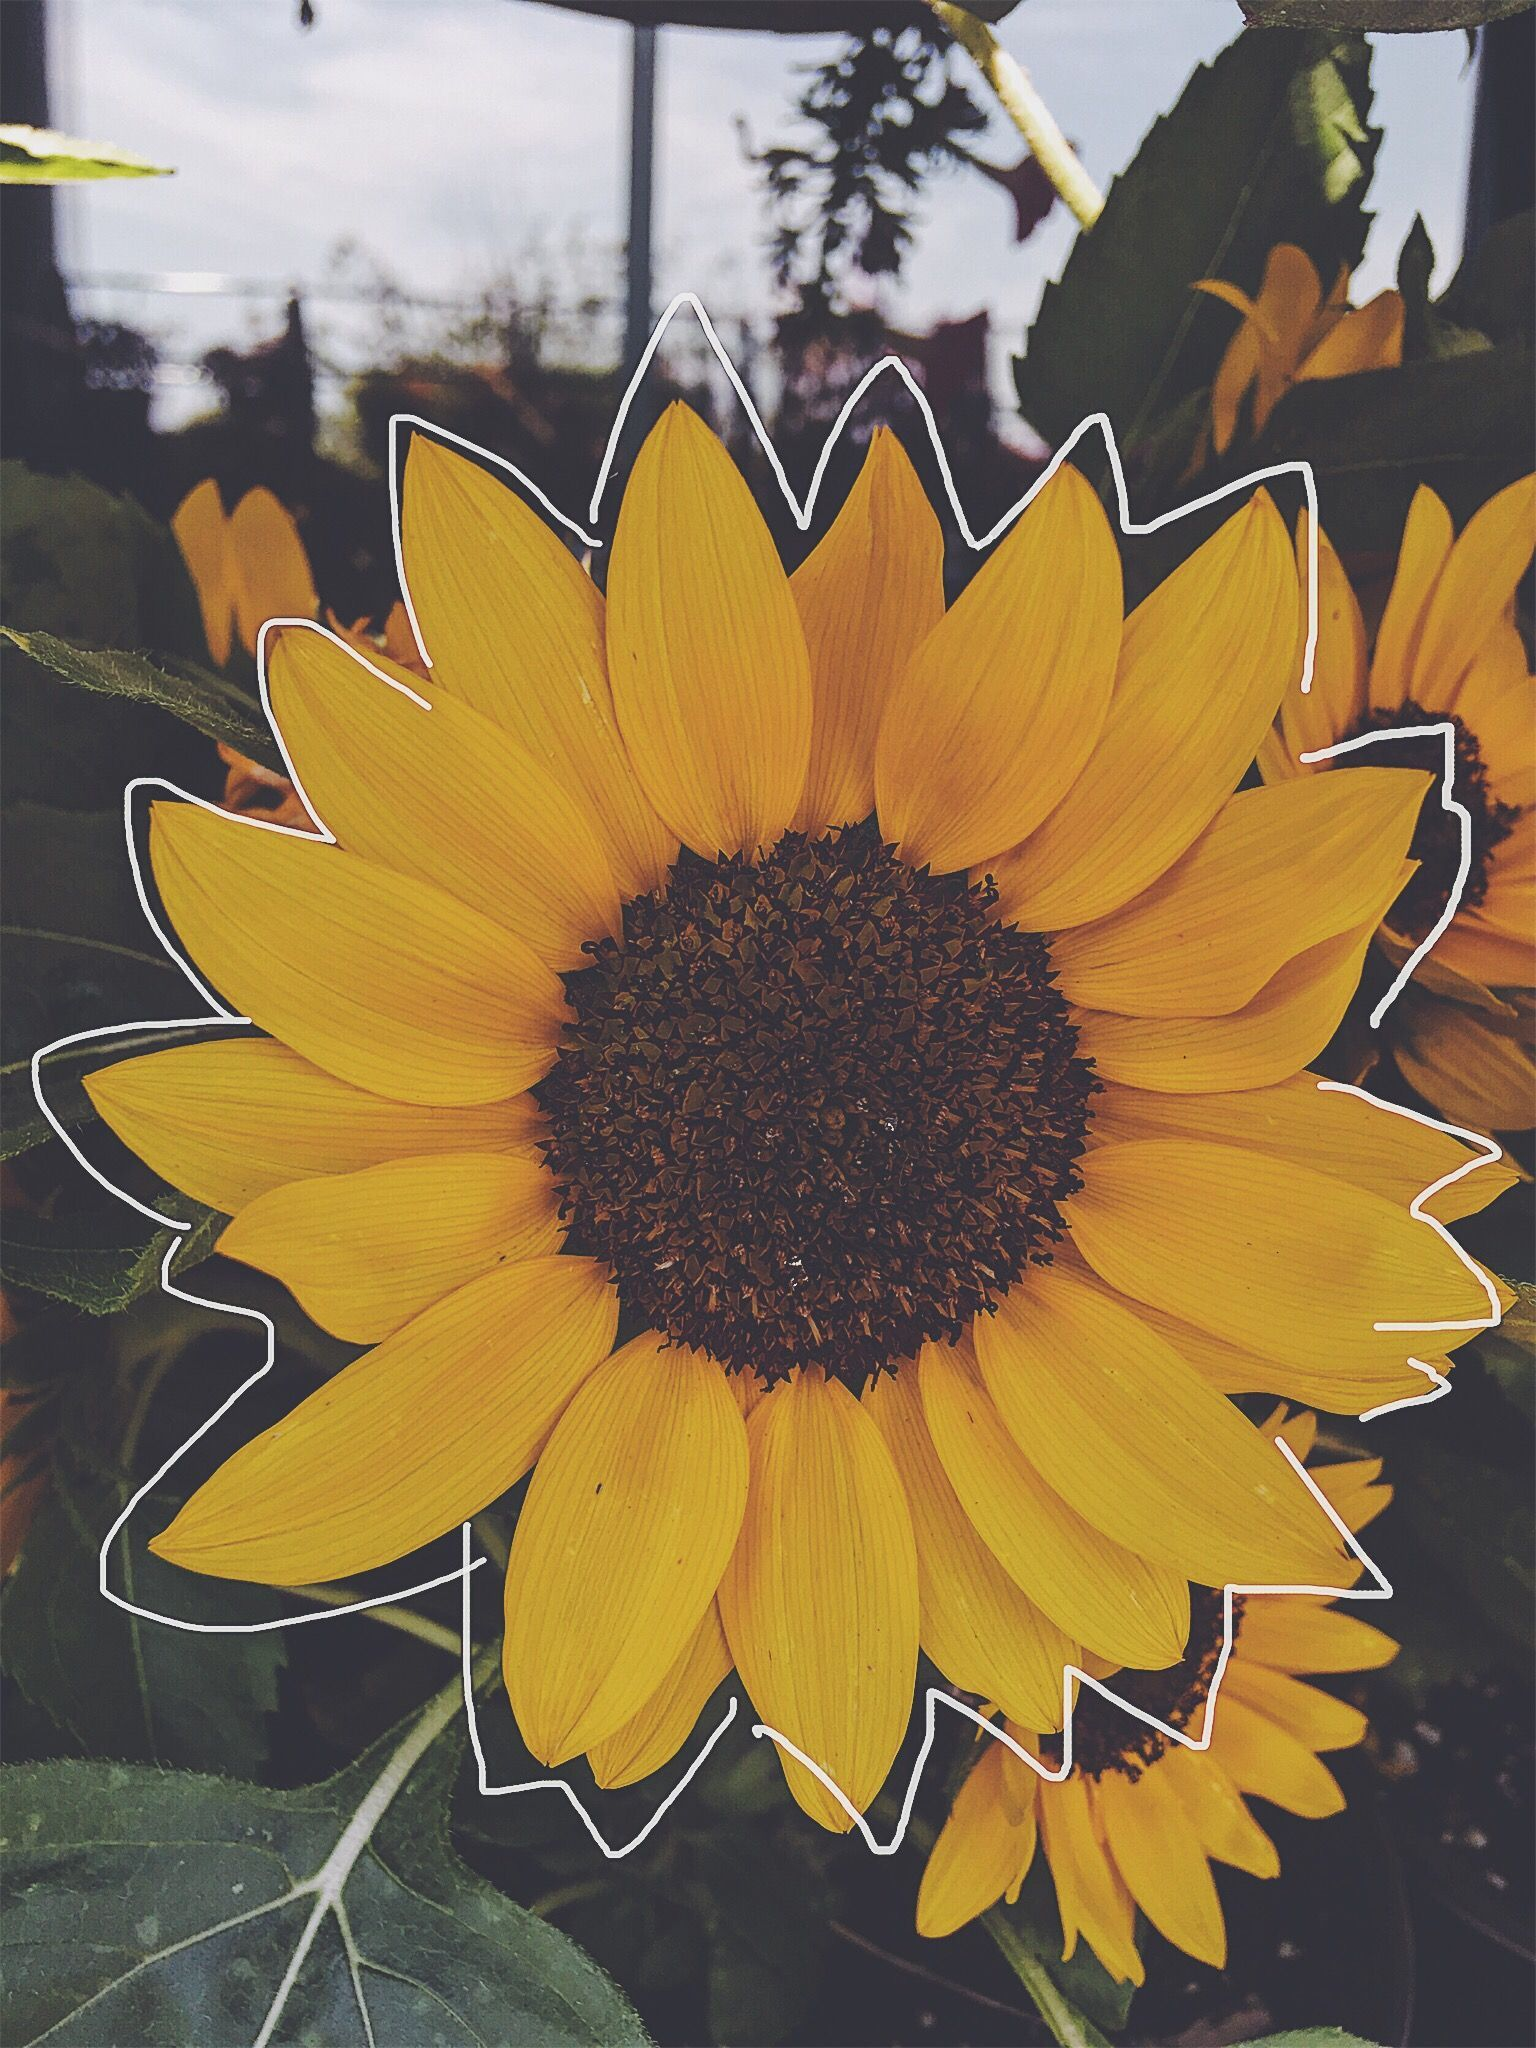 Sunflower Wallpapers Aesthetic Laptop